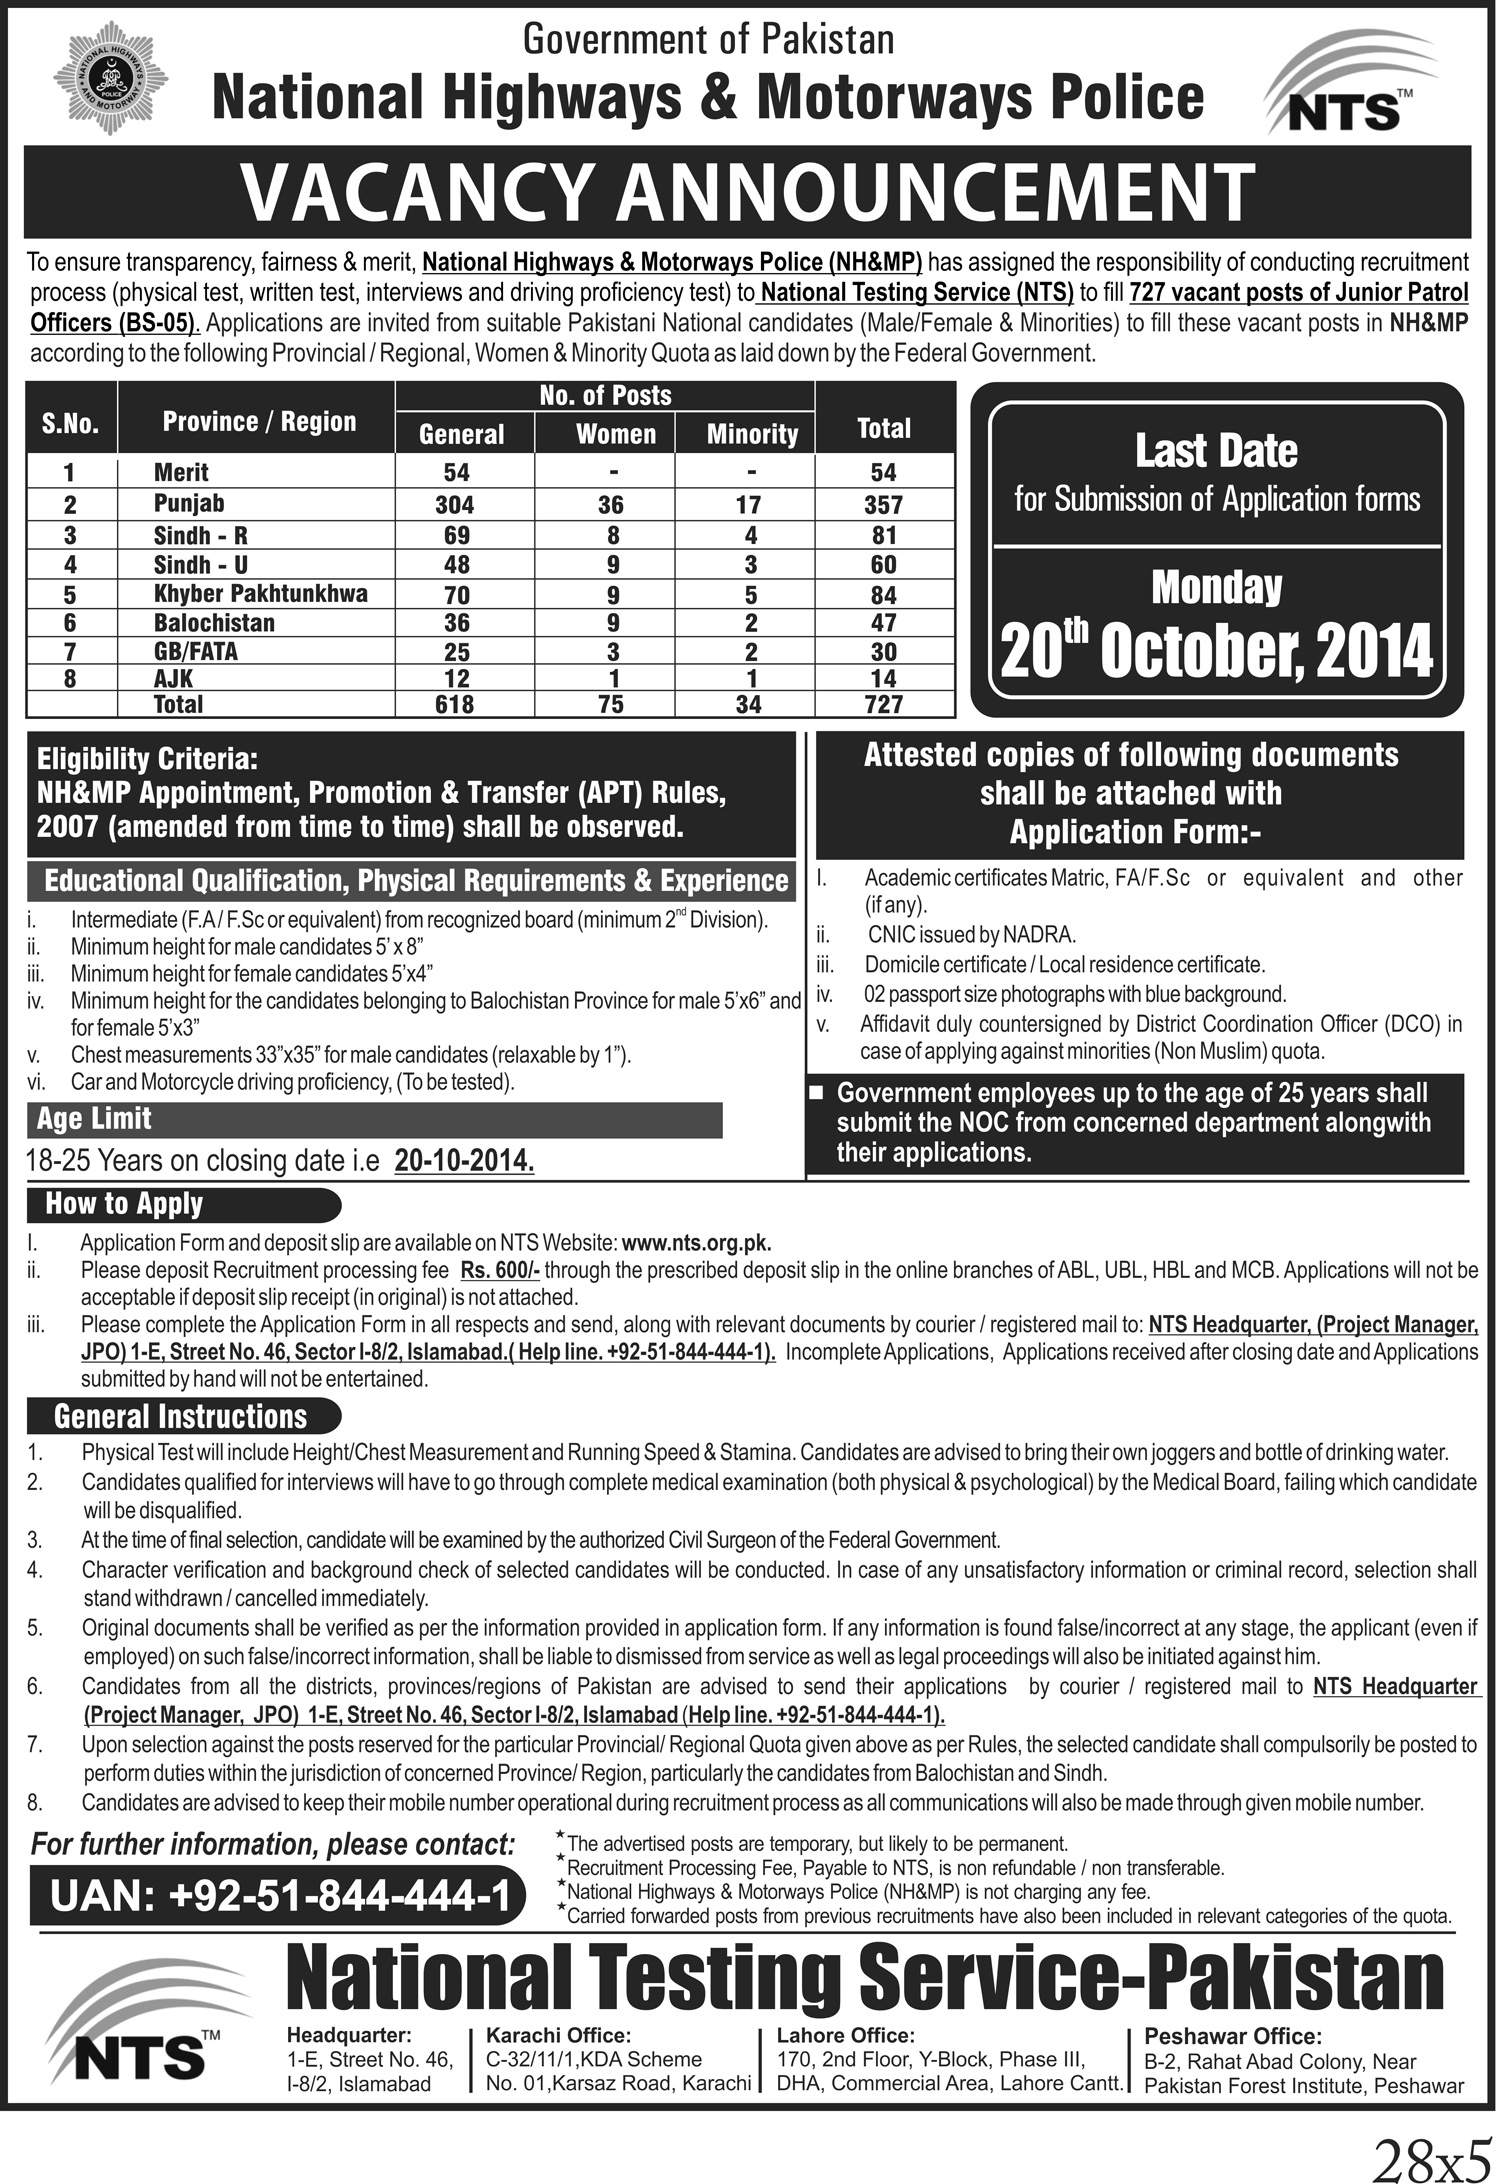 National Highways and Motorways Police (NH&MP) Recruitment